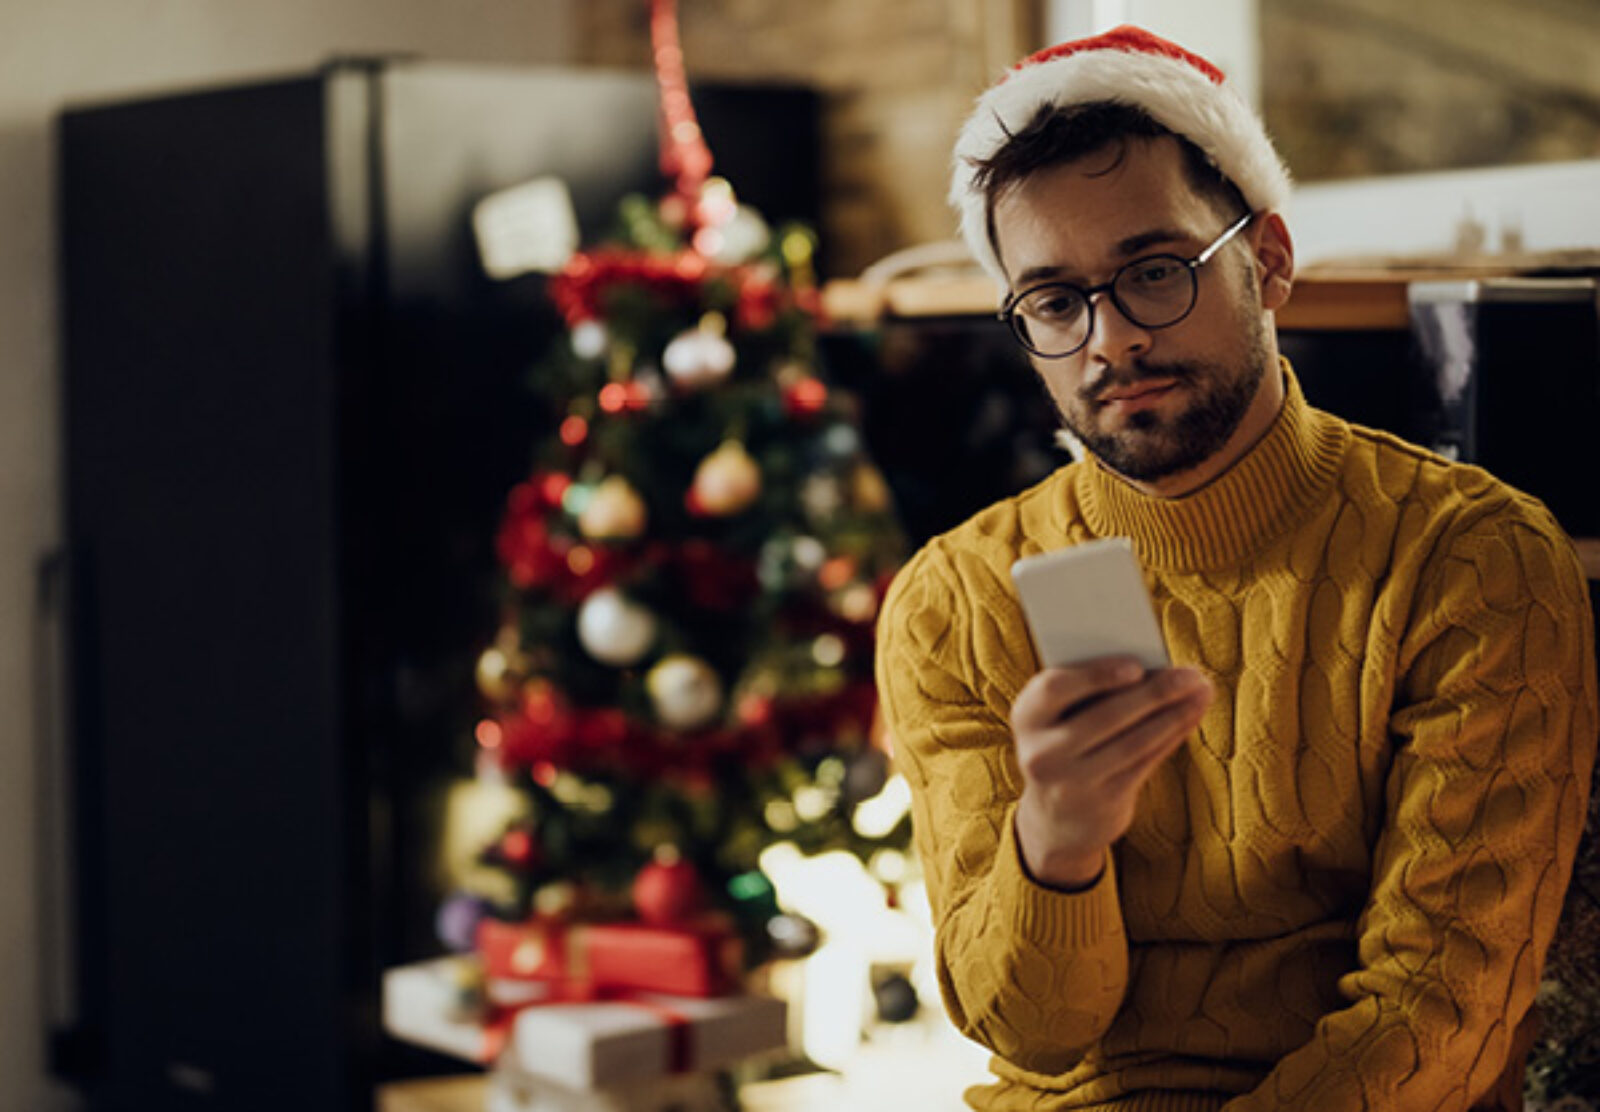 Well in Mind: Coping with Loneliness and the Holidays